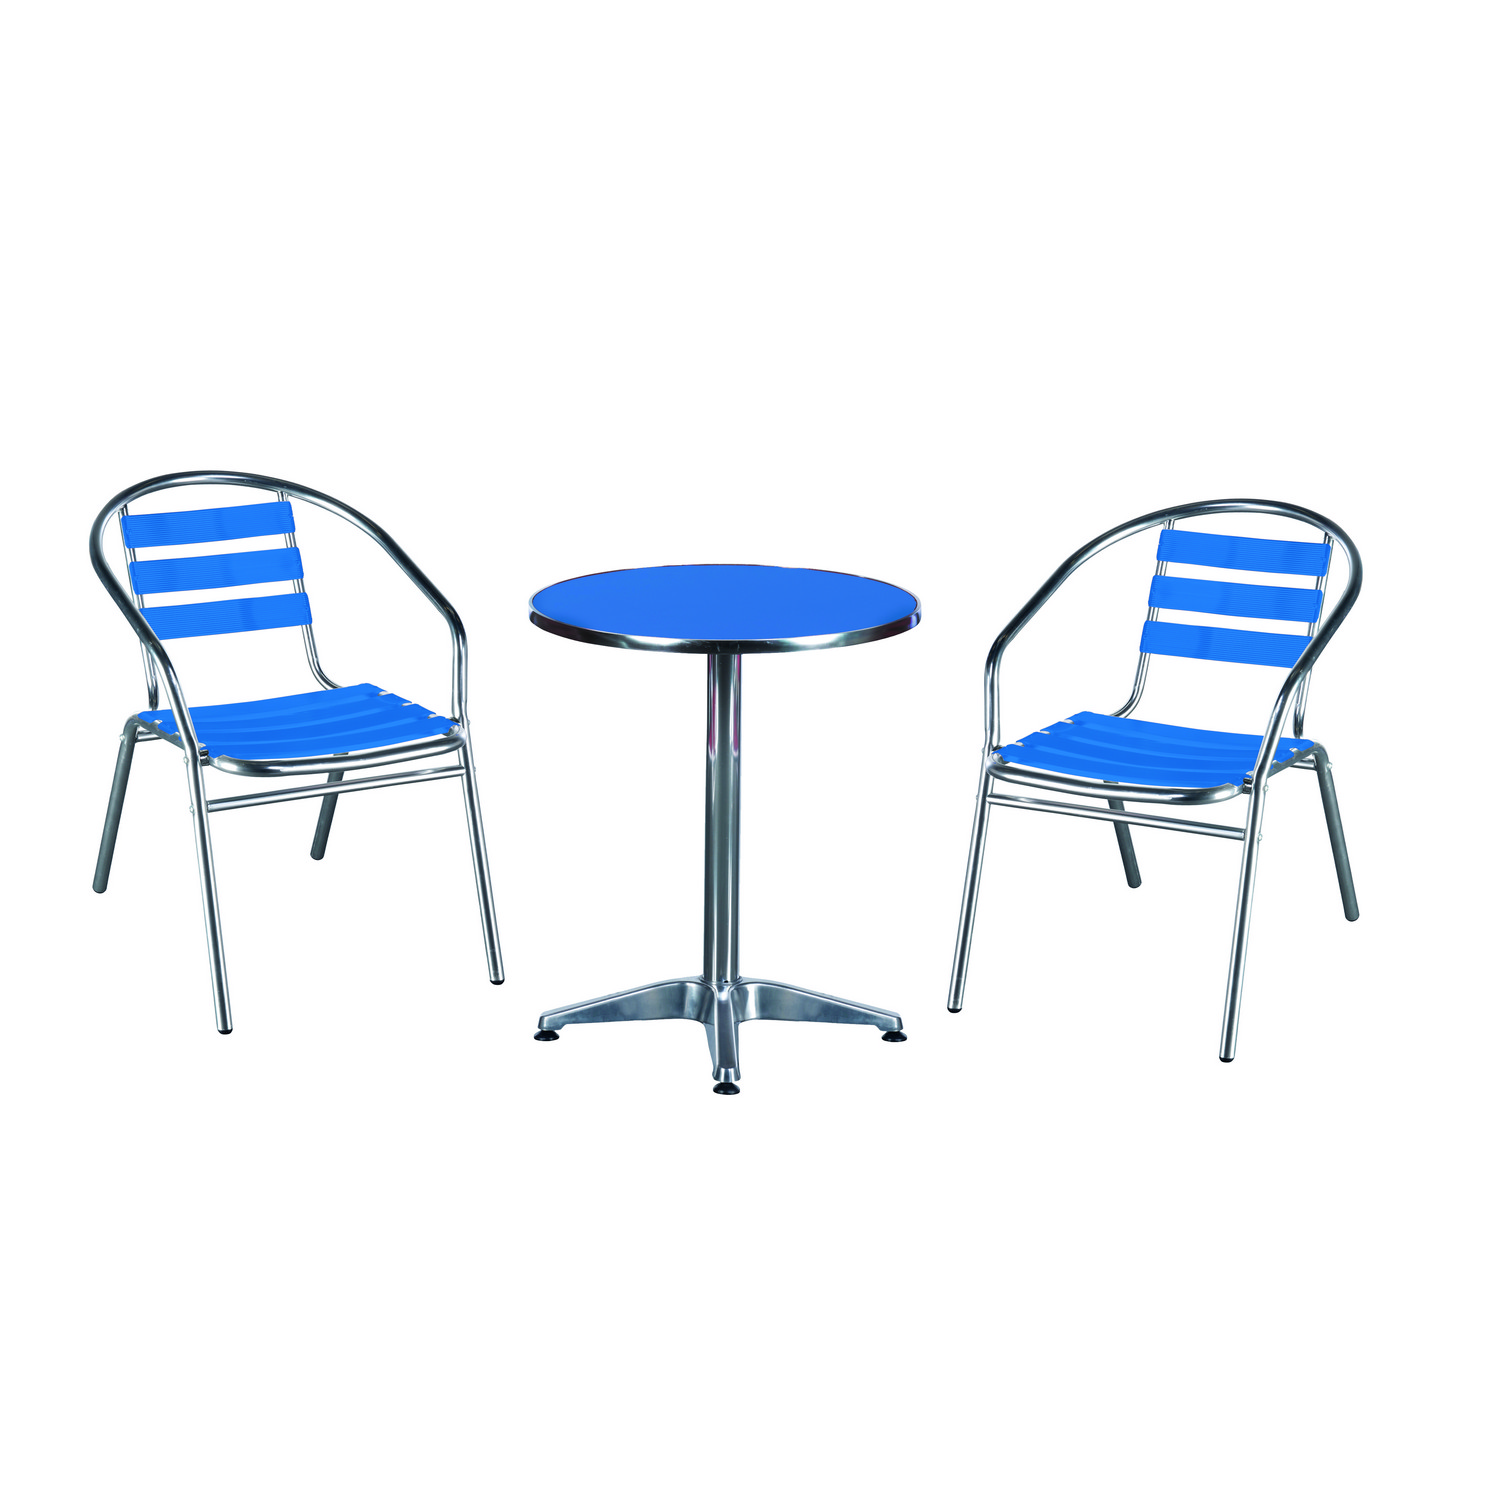 bistro table and chairs indoor marine bean bag chair aluminium patio garden furniture outdoor backyard